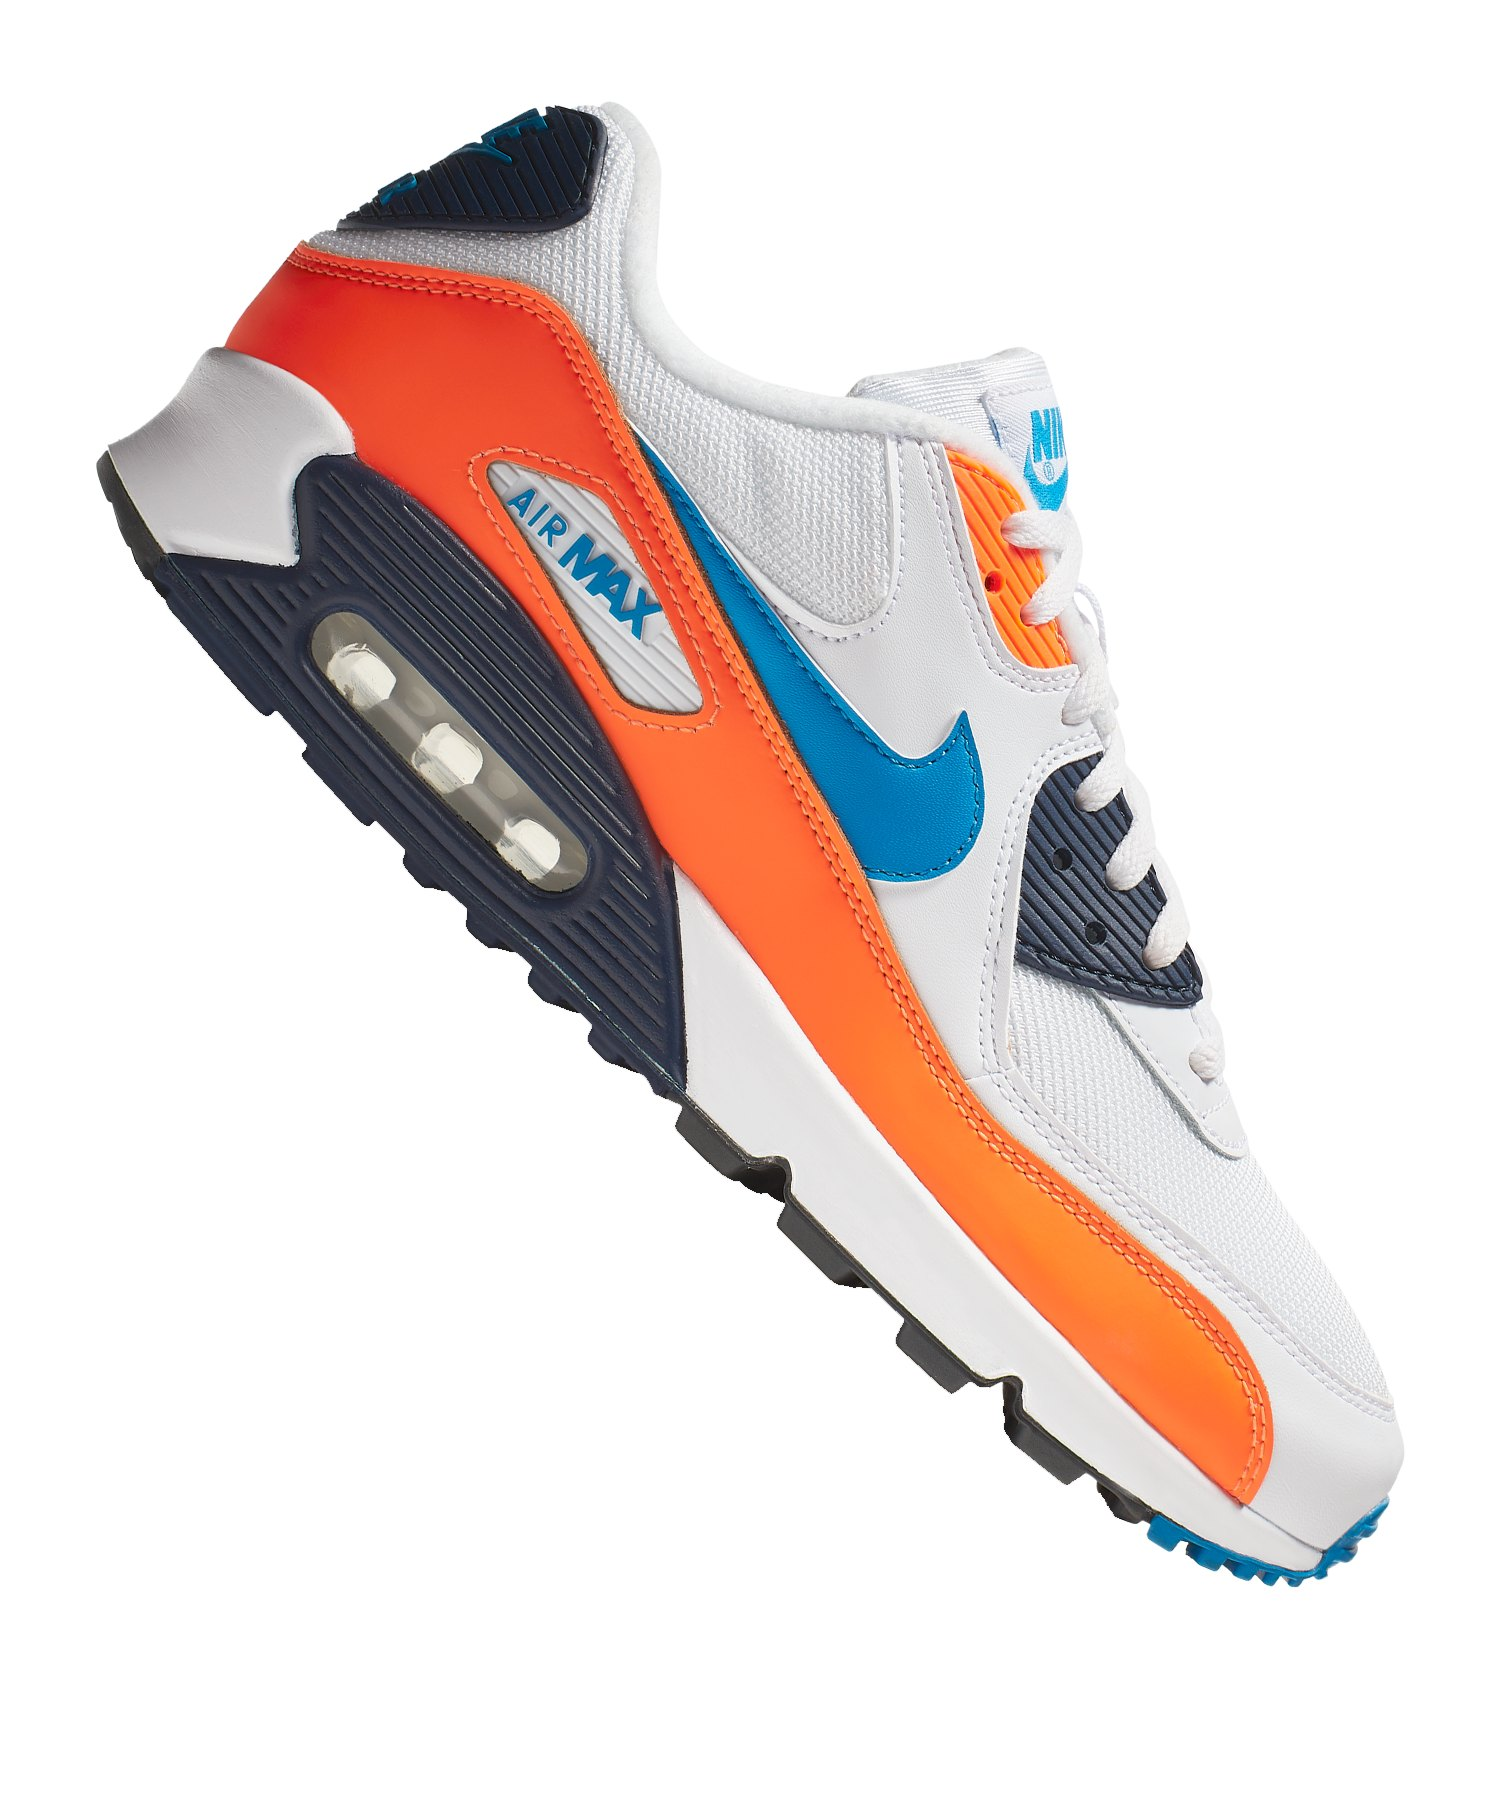 official photos 45e2d 217f3 Nike Air Max 90 Essential Sneaker Weiss Blau F104 - Weiss